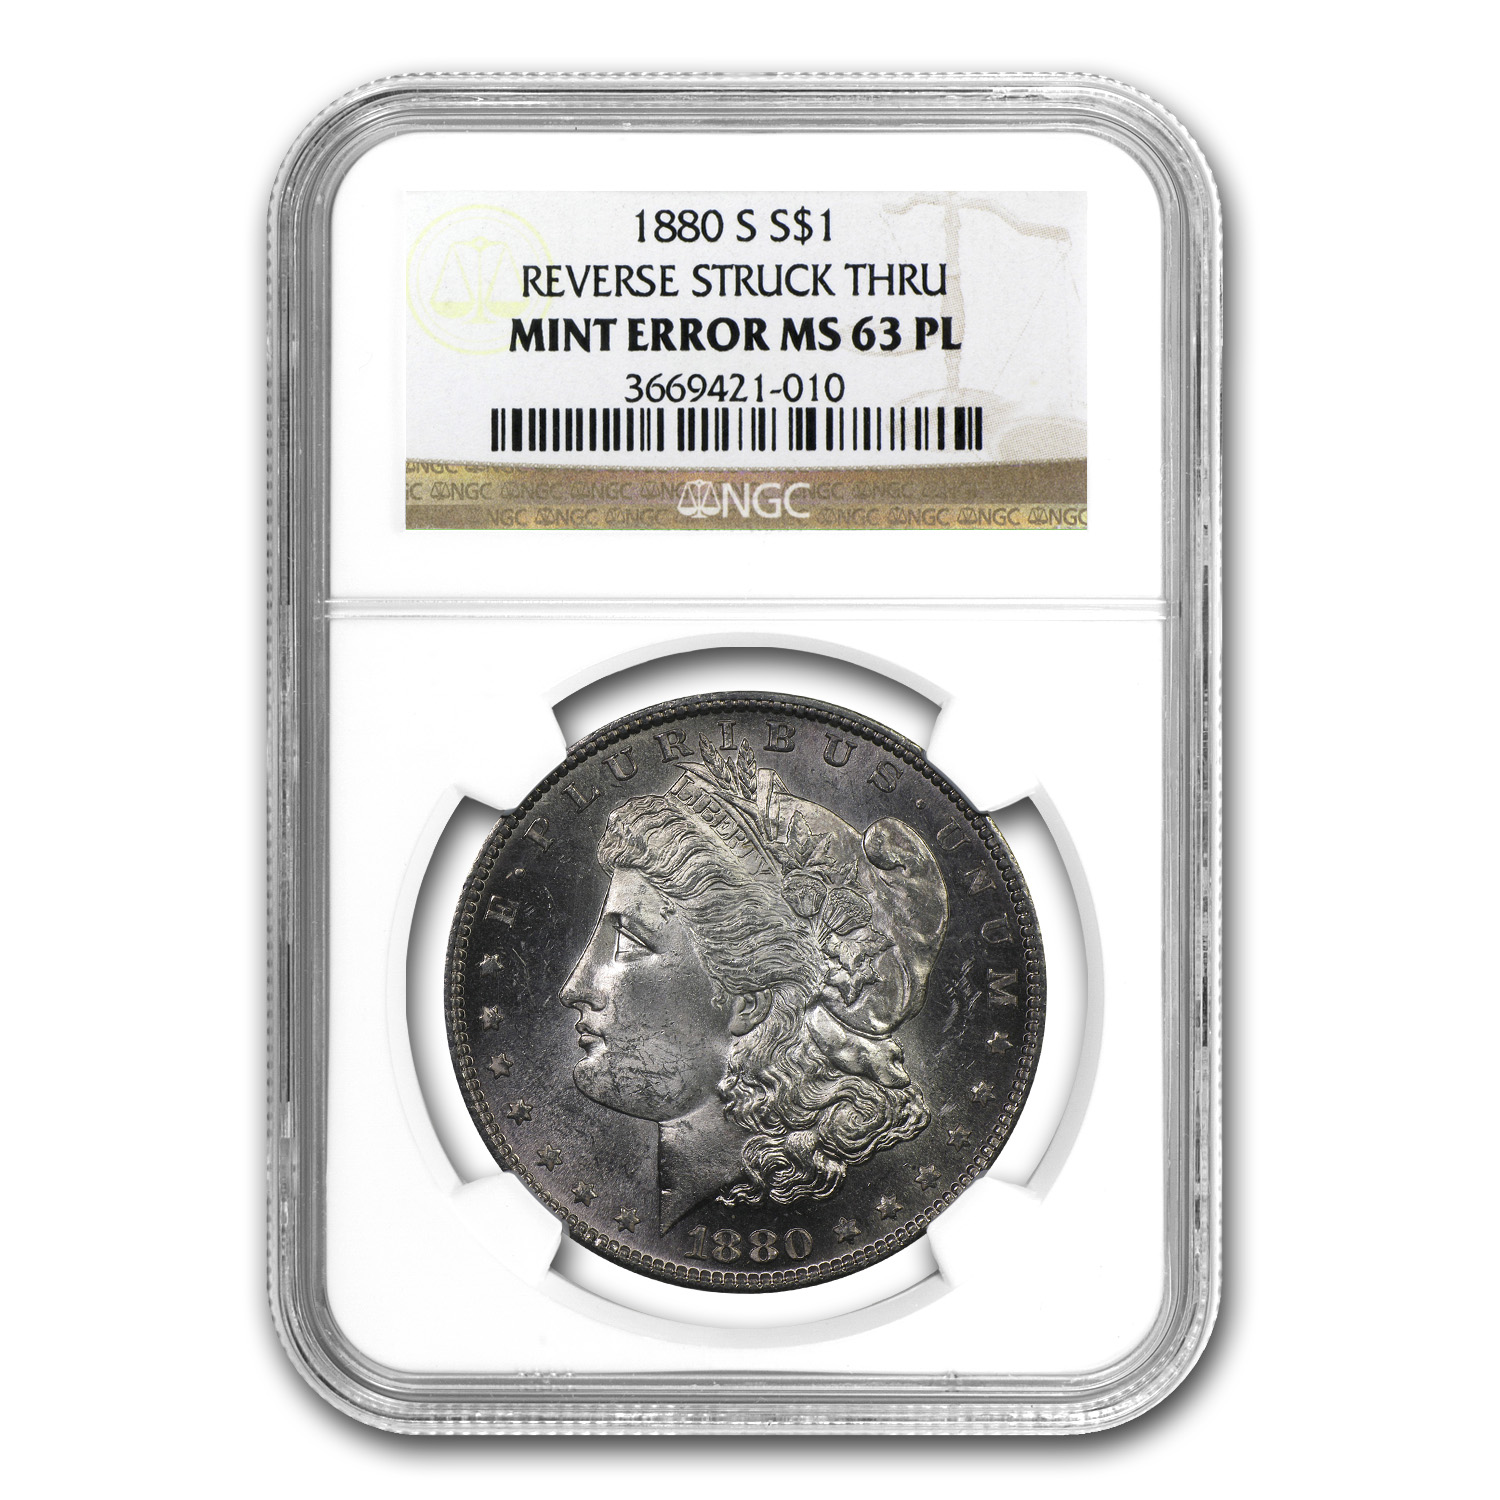 1880-S Morgan Dollar MS-63 PL NGC (Rev Struck Thru Error)